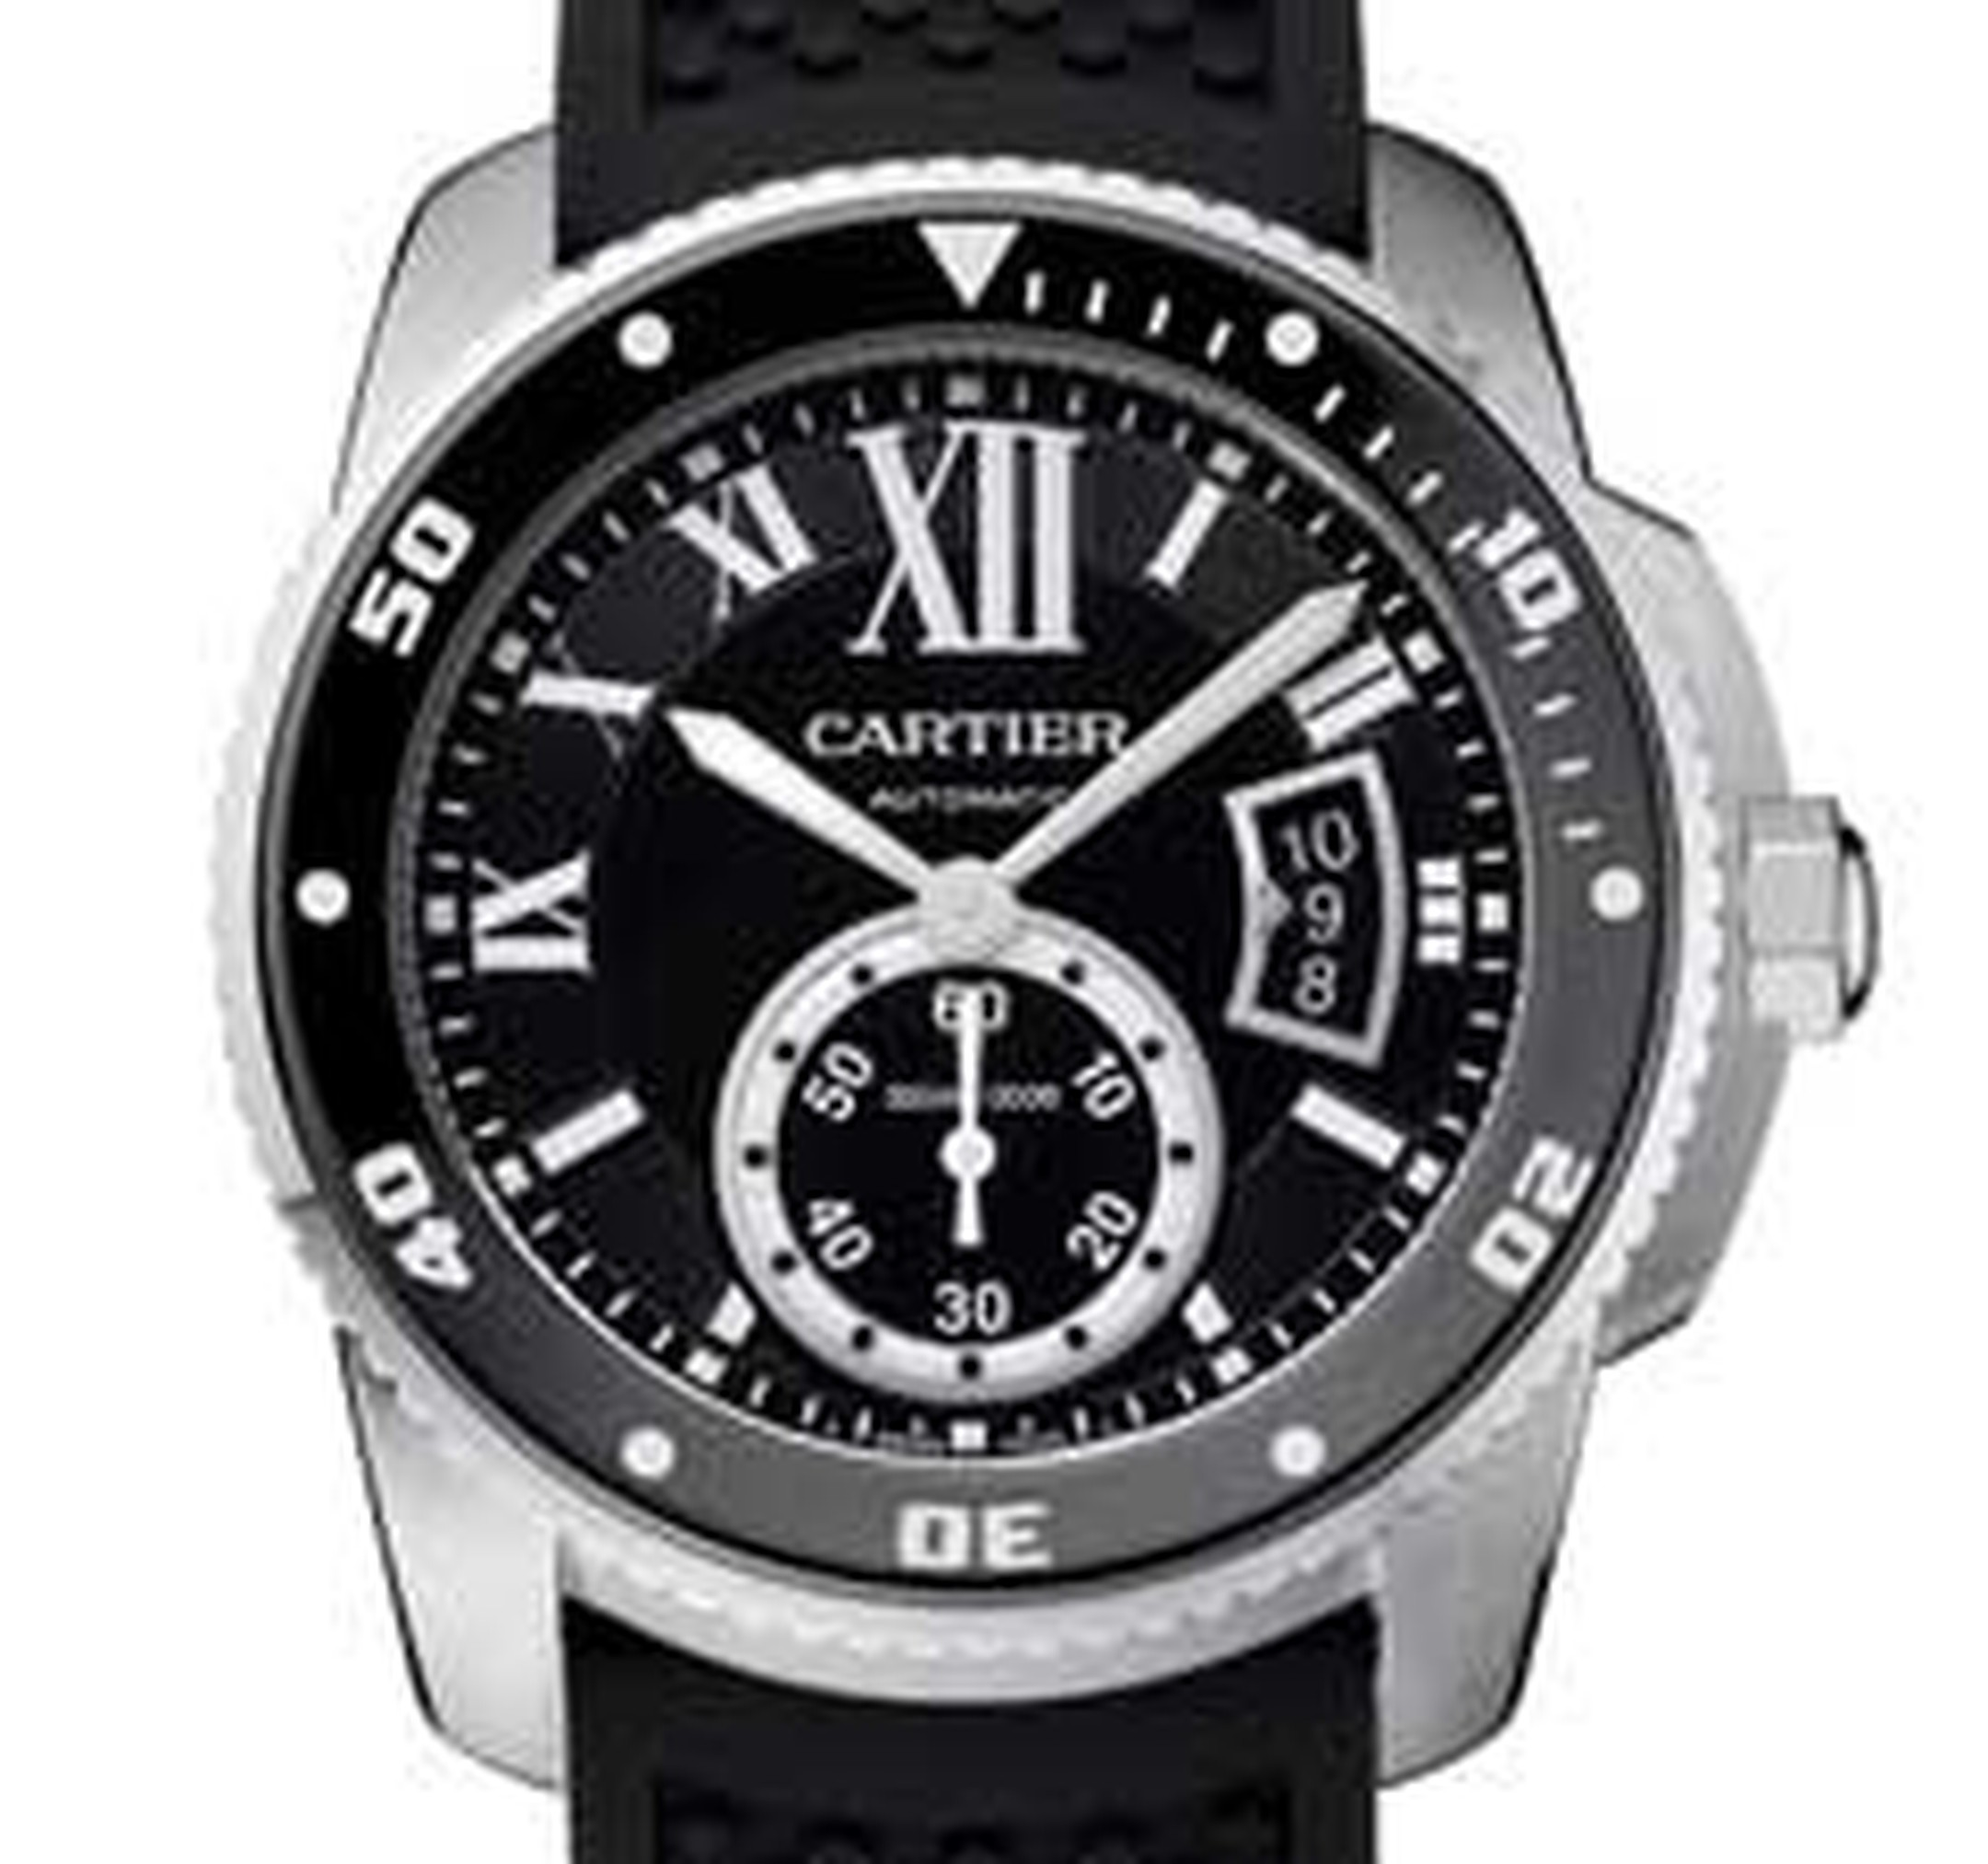 Cartier -Calibre -Diver HP